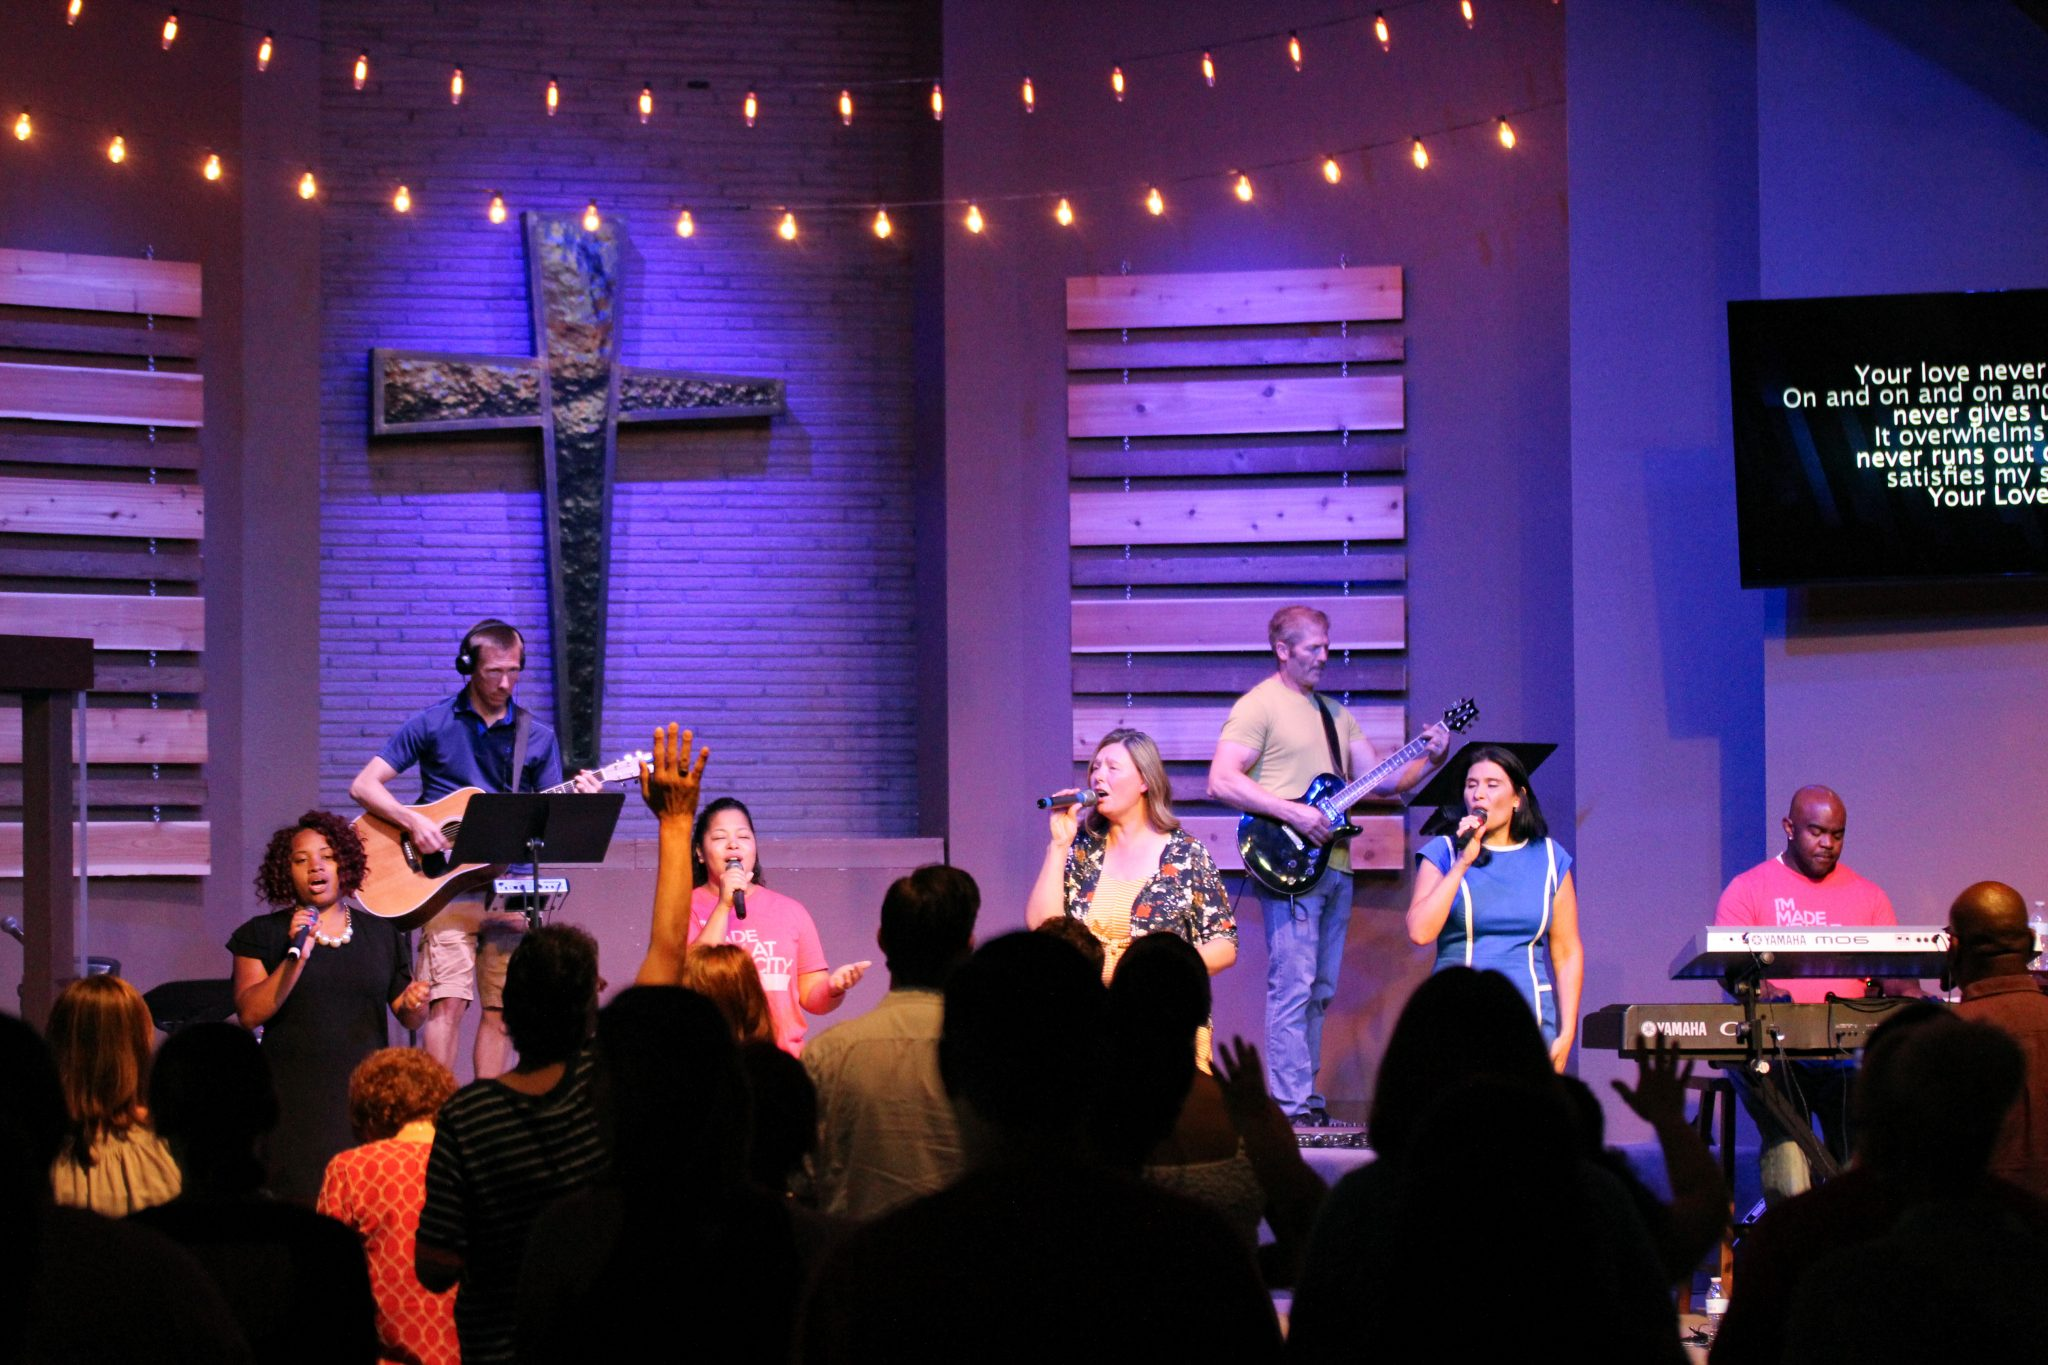 Image result for Christian Unity: Black and White Churches Merge to Become New City Church